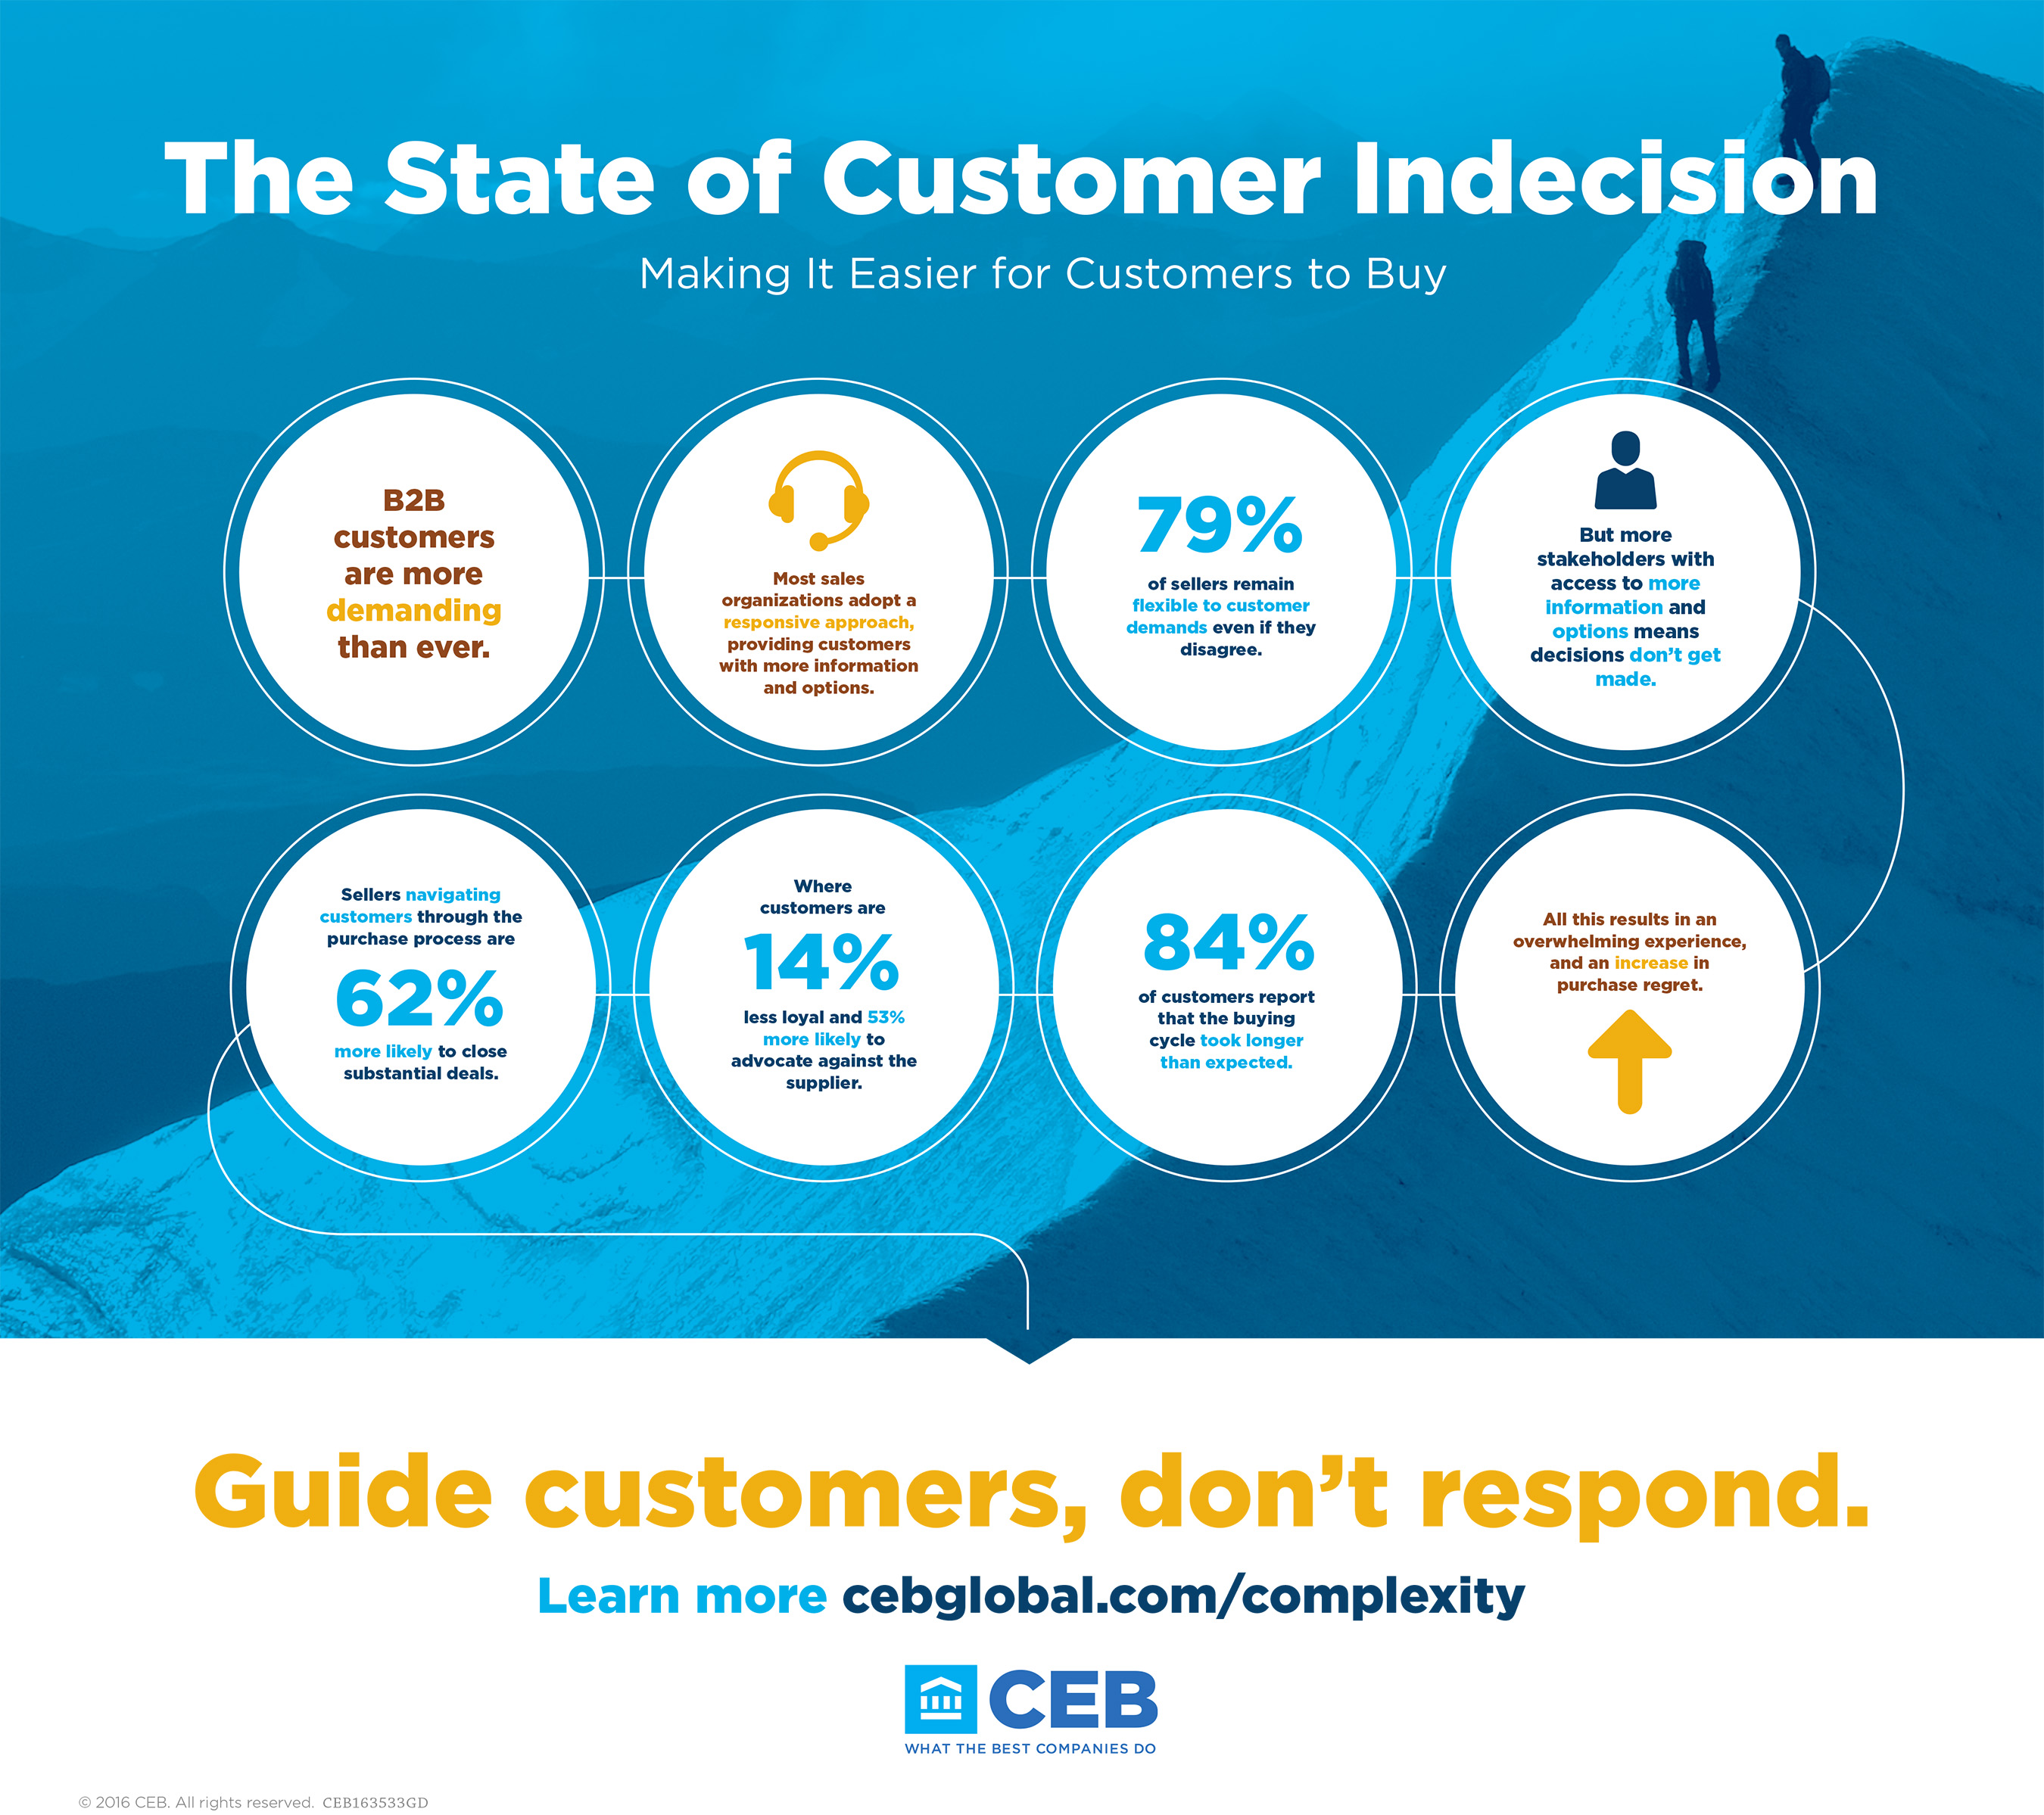 The State of Customer Indecision - Making It Easier for Customers to Buy